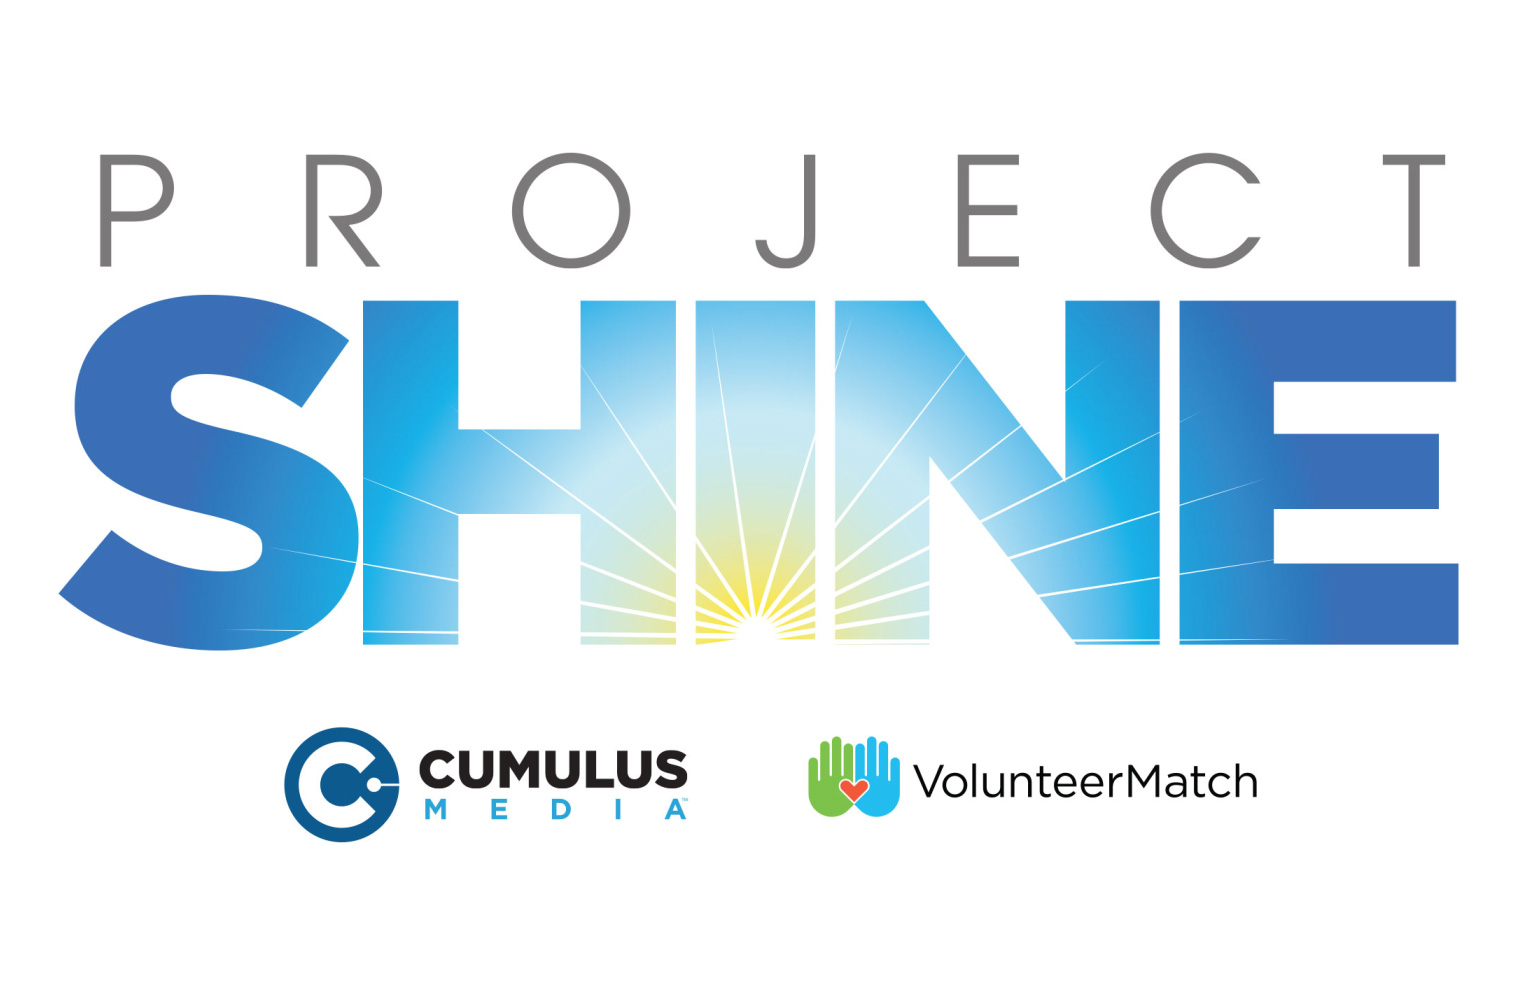 What is Project Shine?